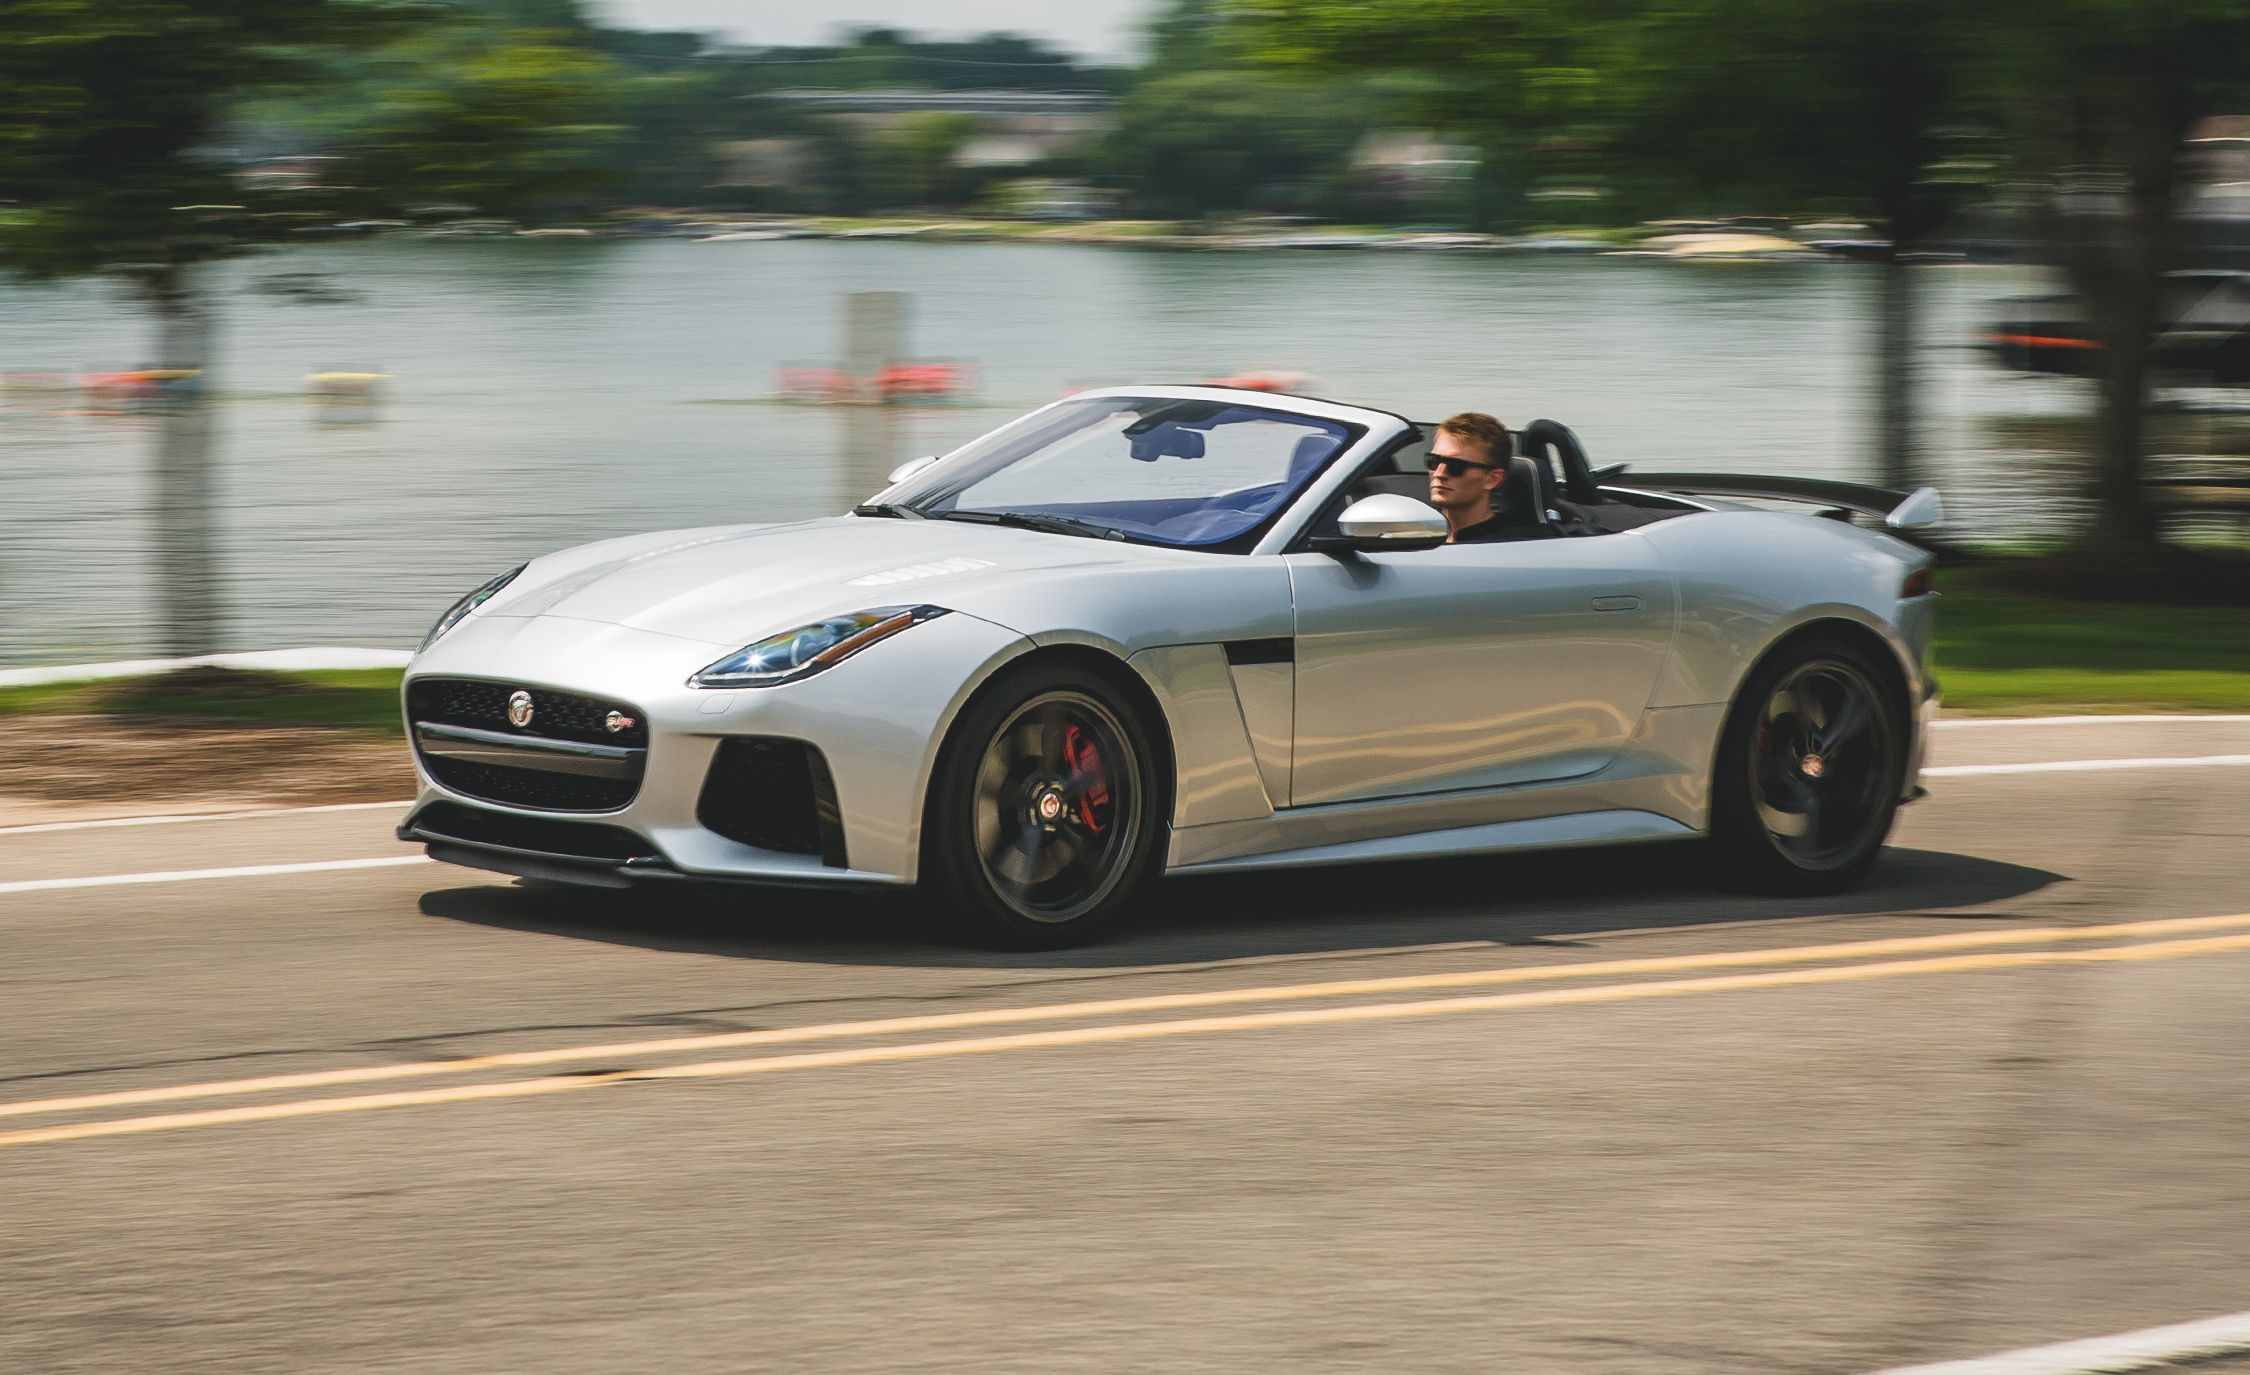 2017 jaguar f-type svr convertible test | review | car and driver